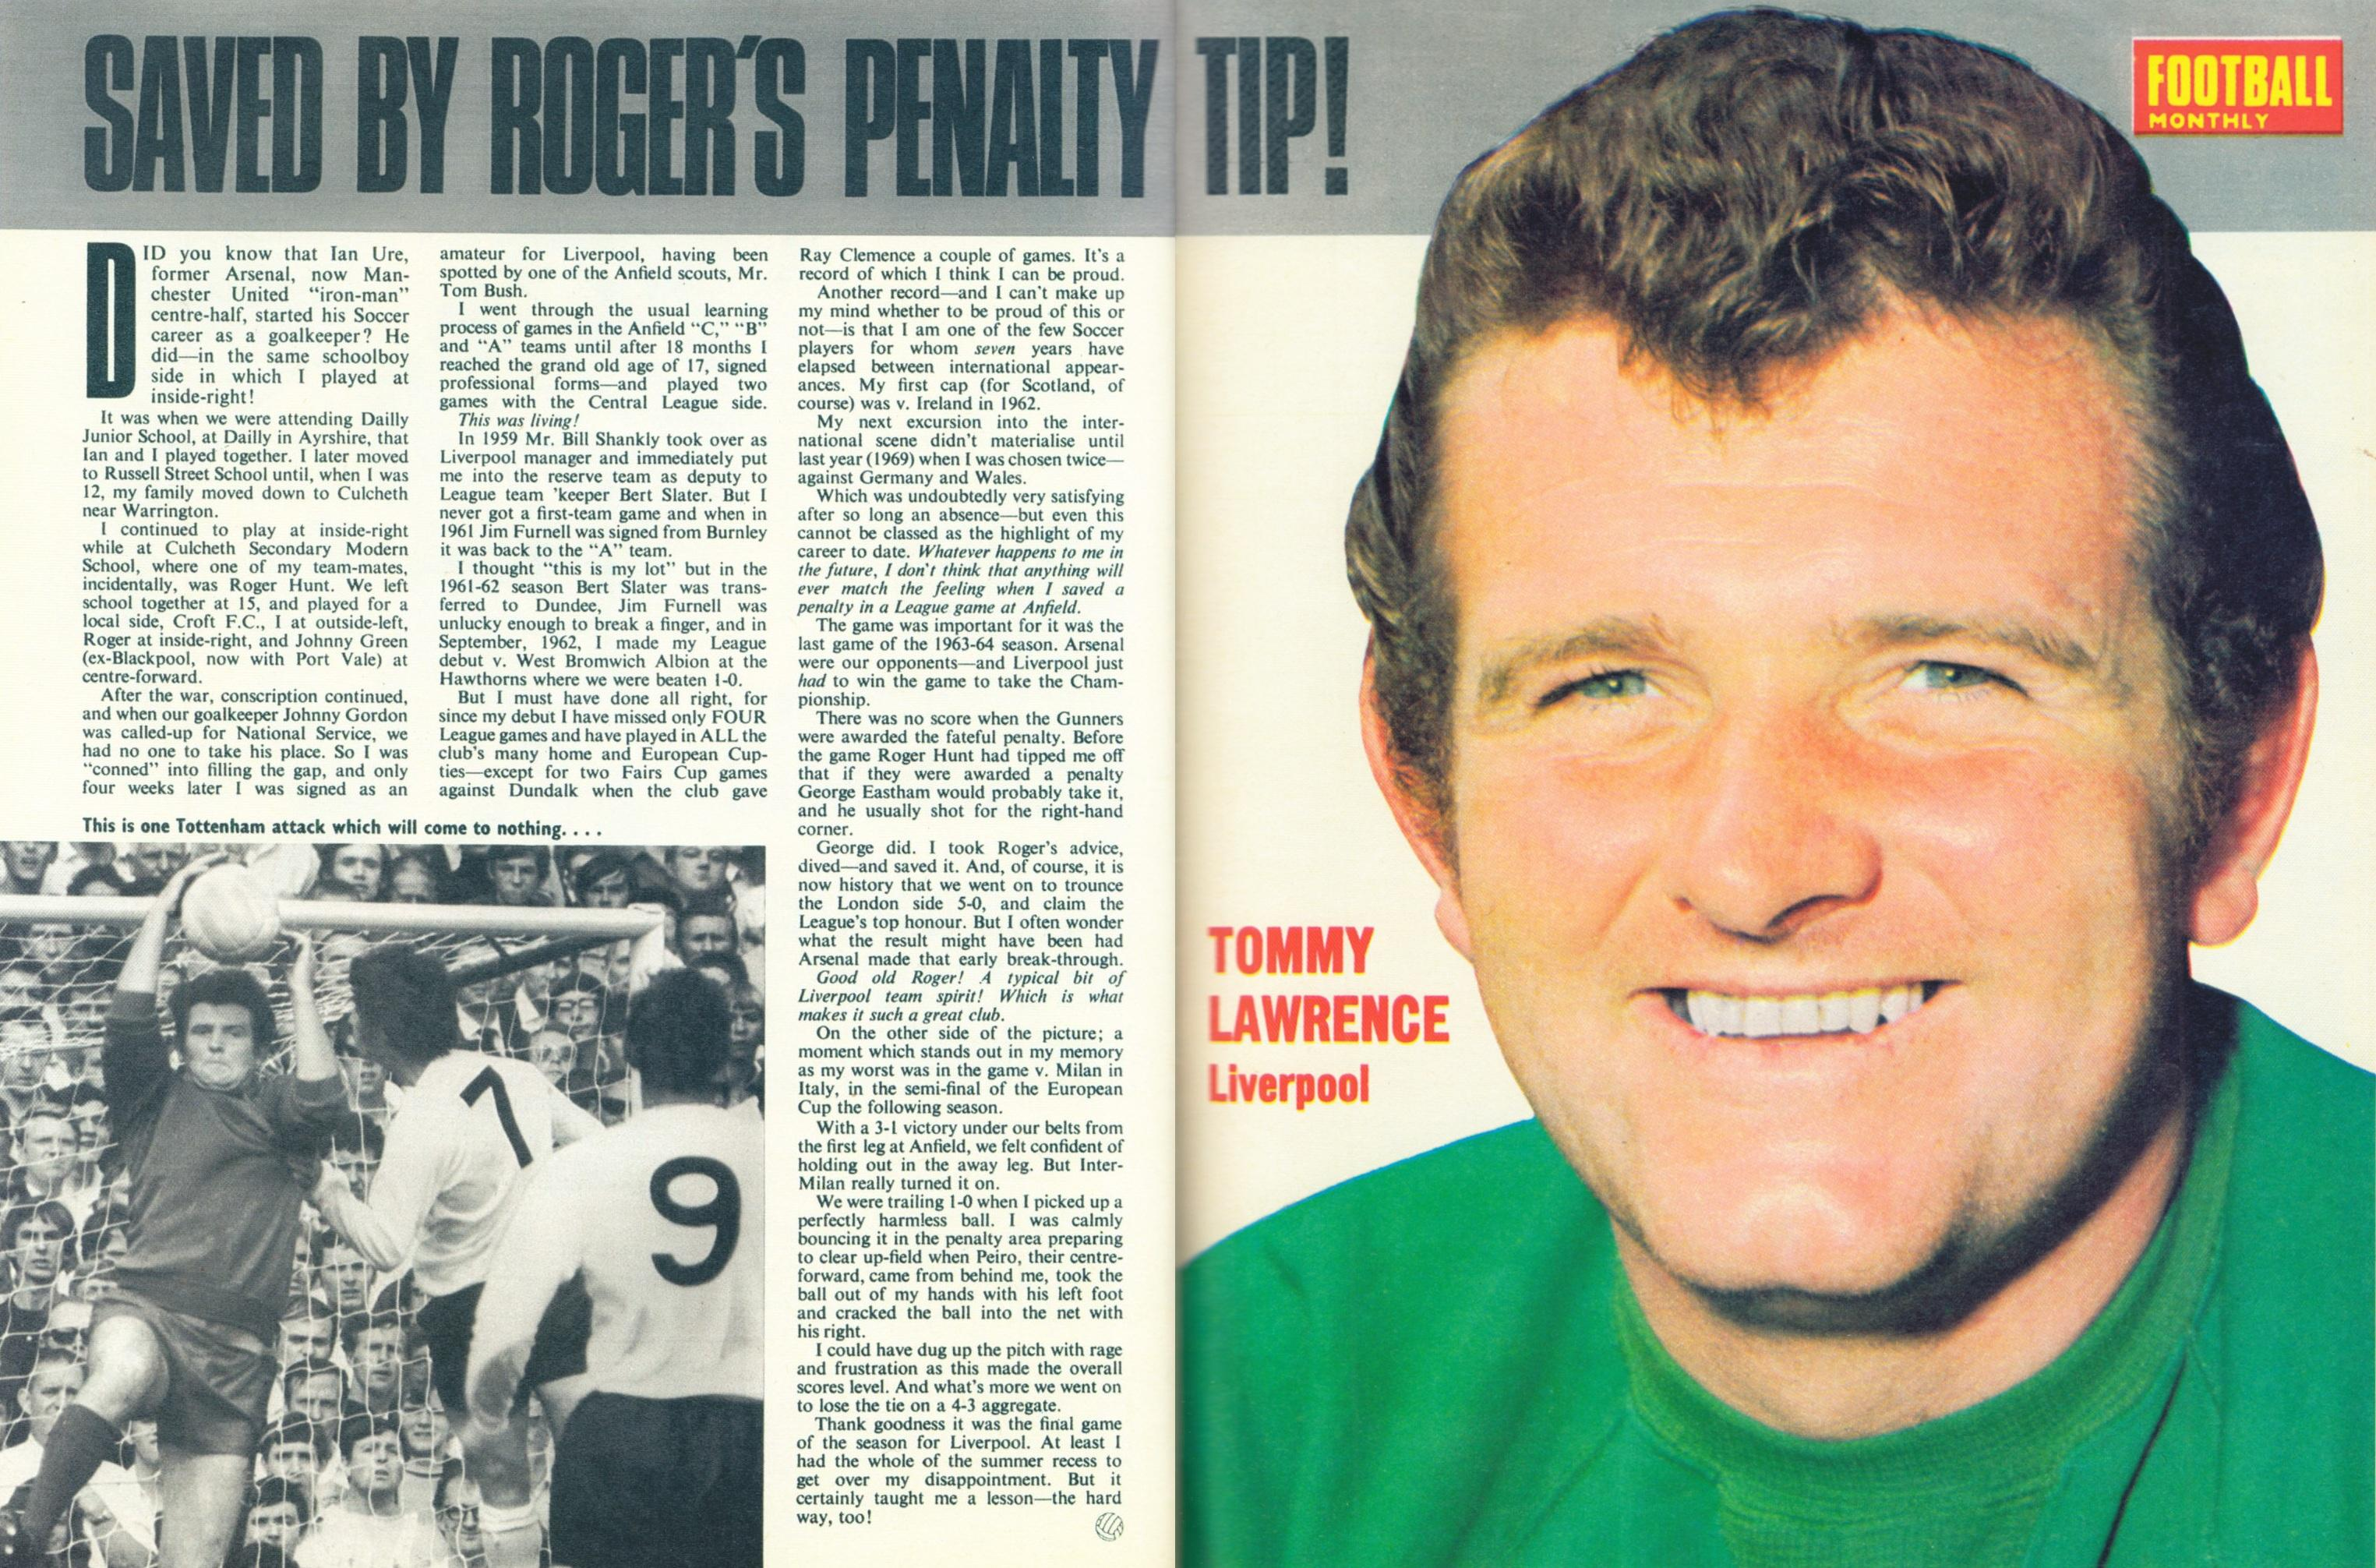 IMG TOMMY LAWRENCE, Footballer